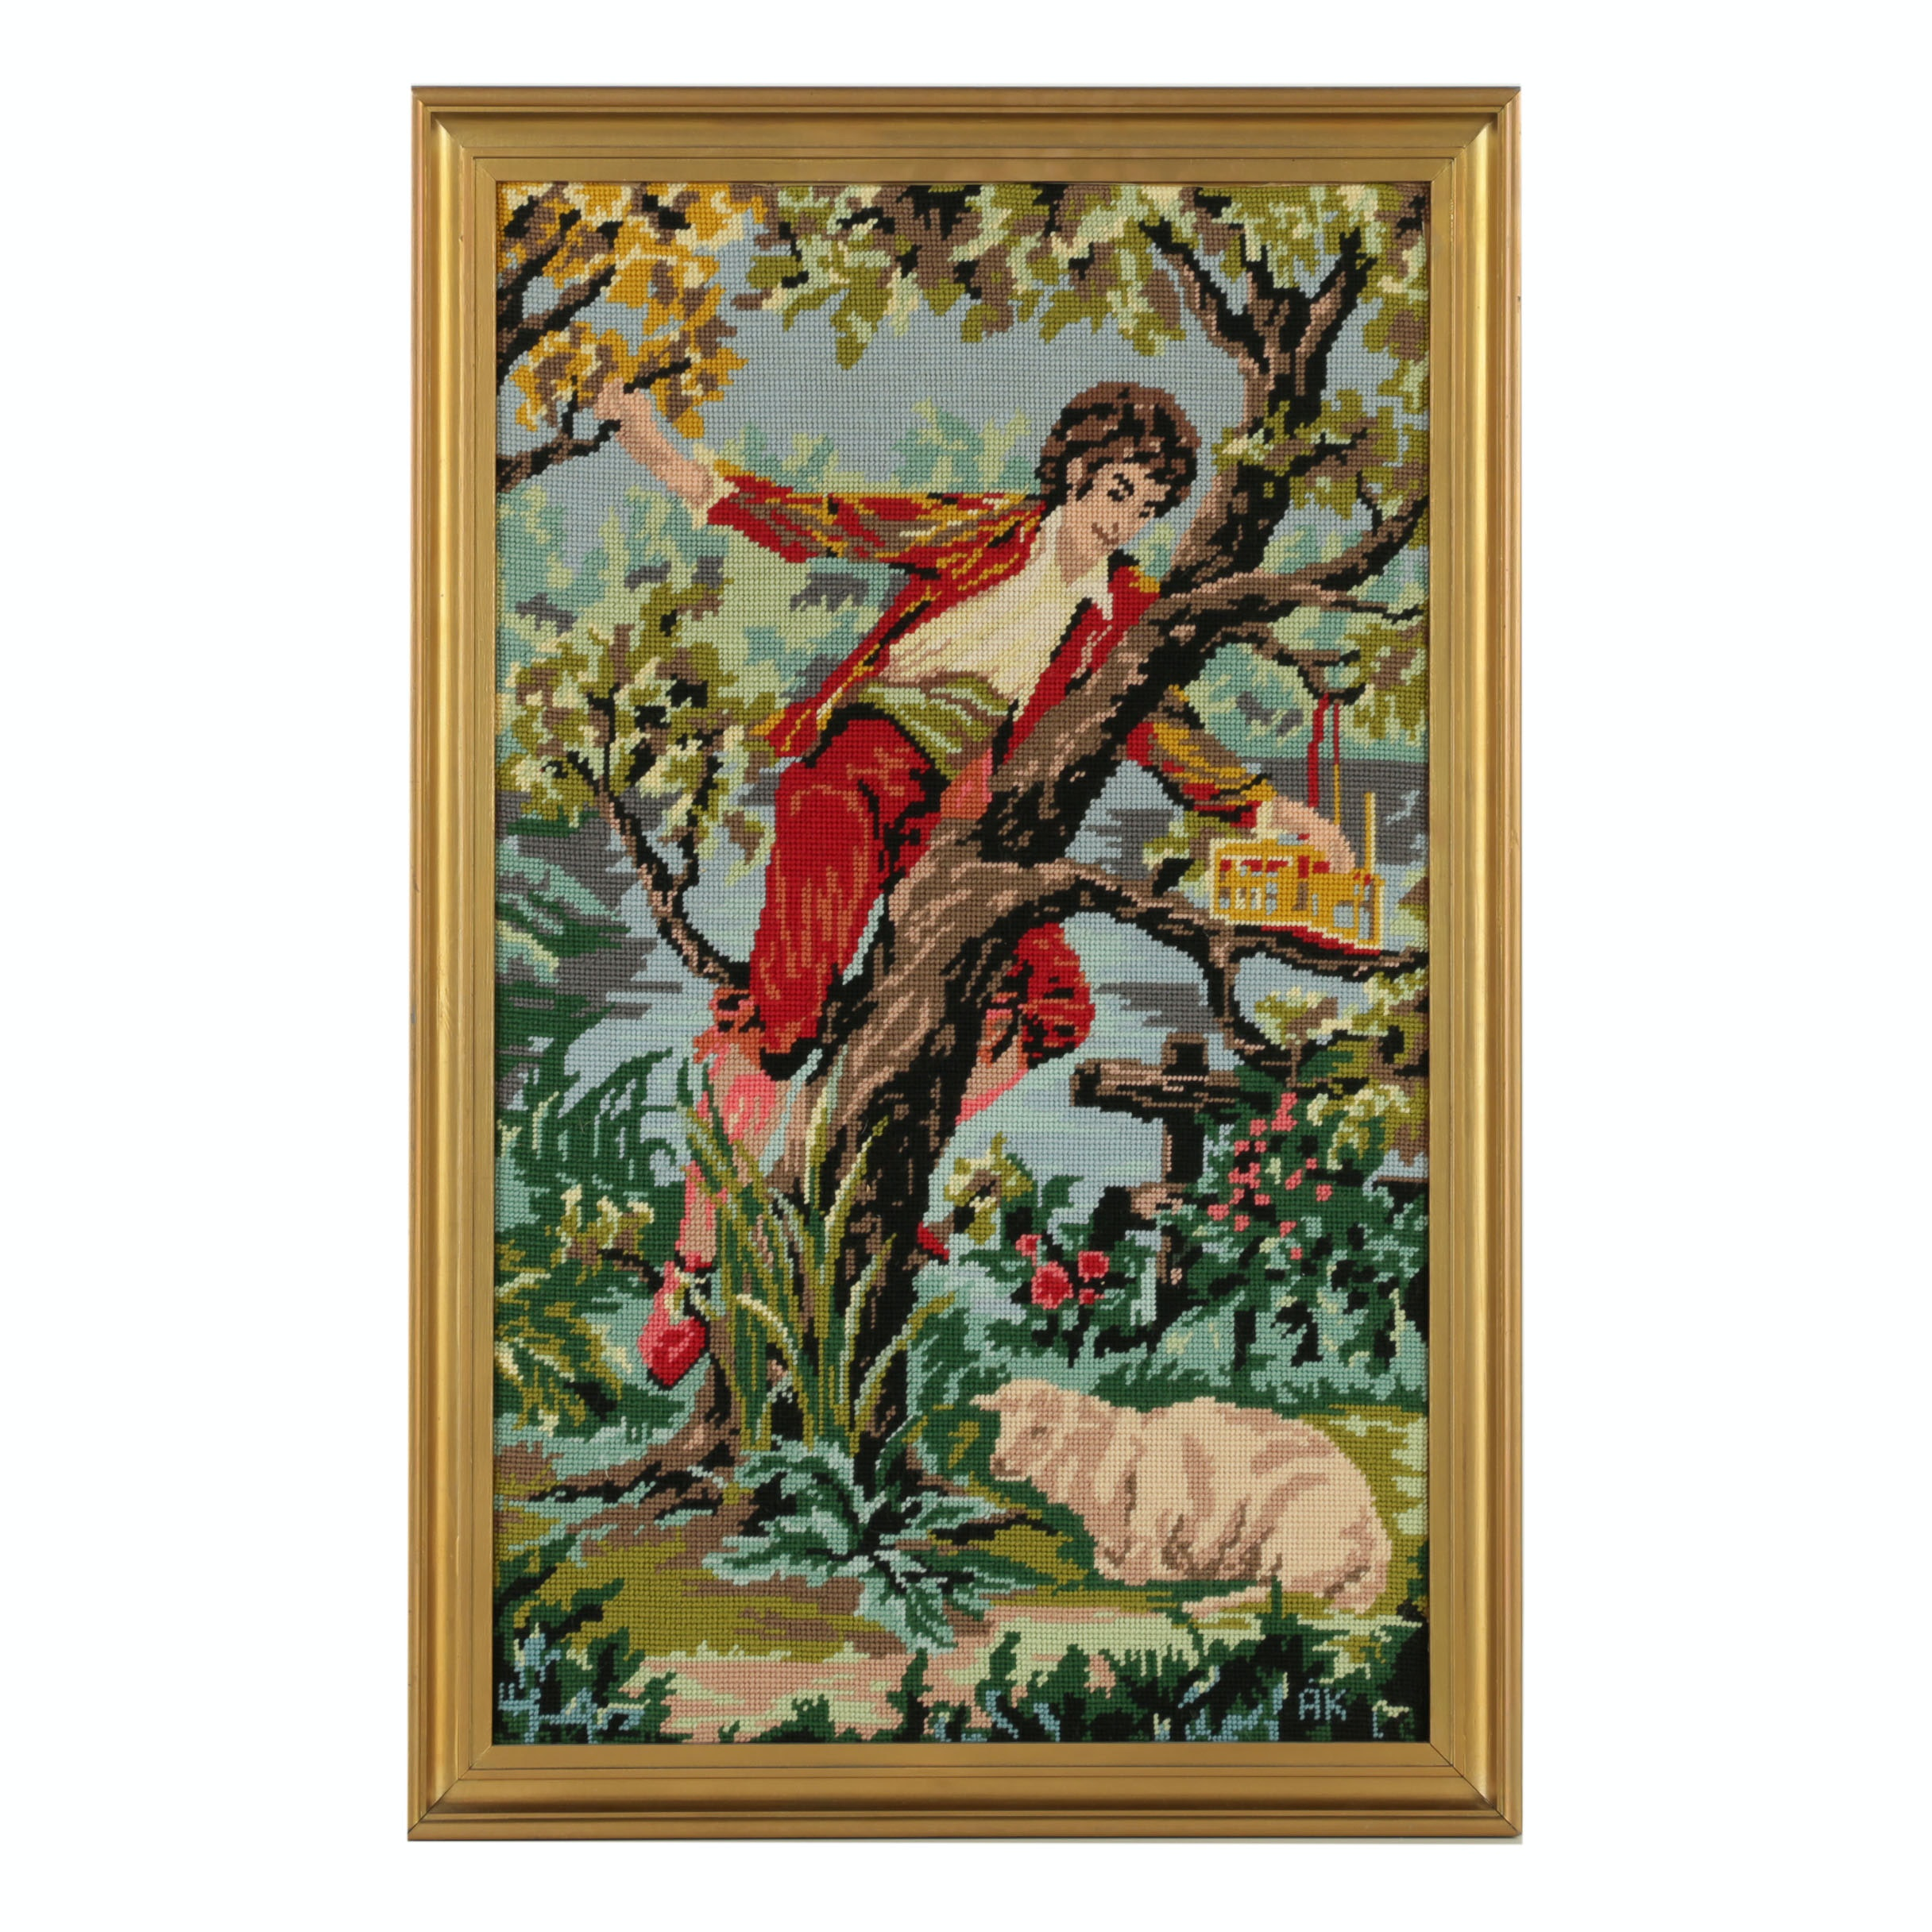 Needlepoint Embroidery of Figurative Scene